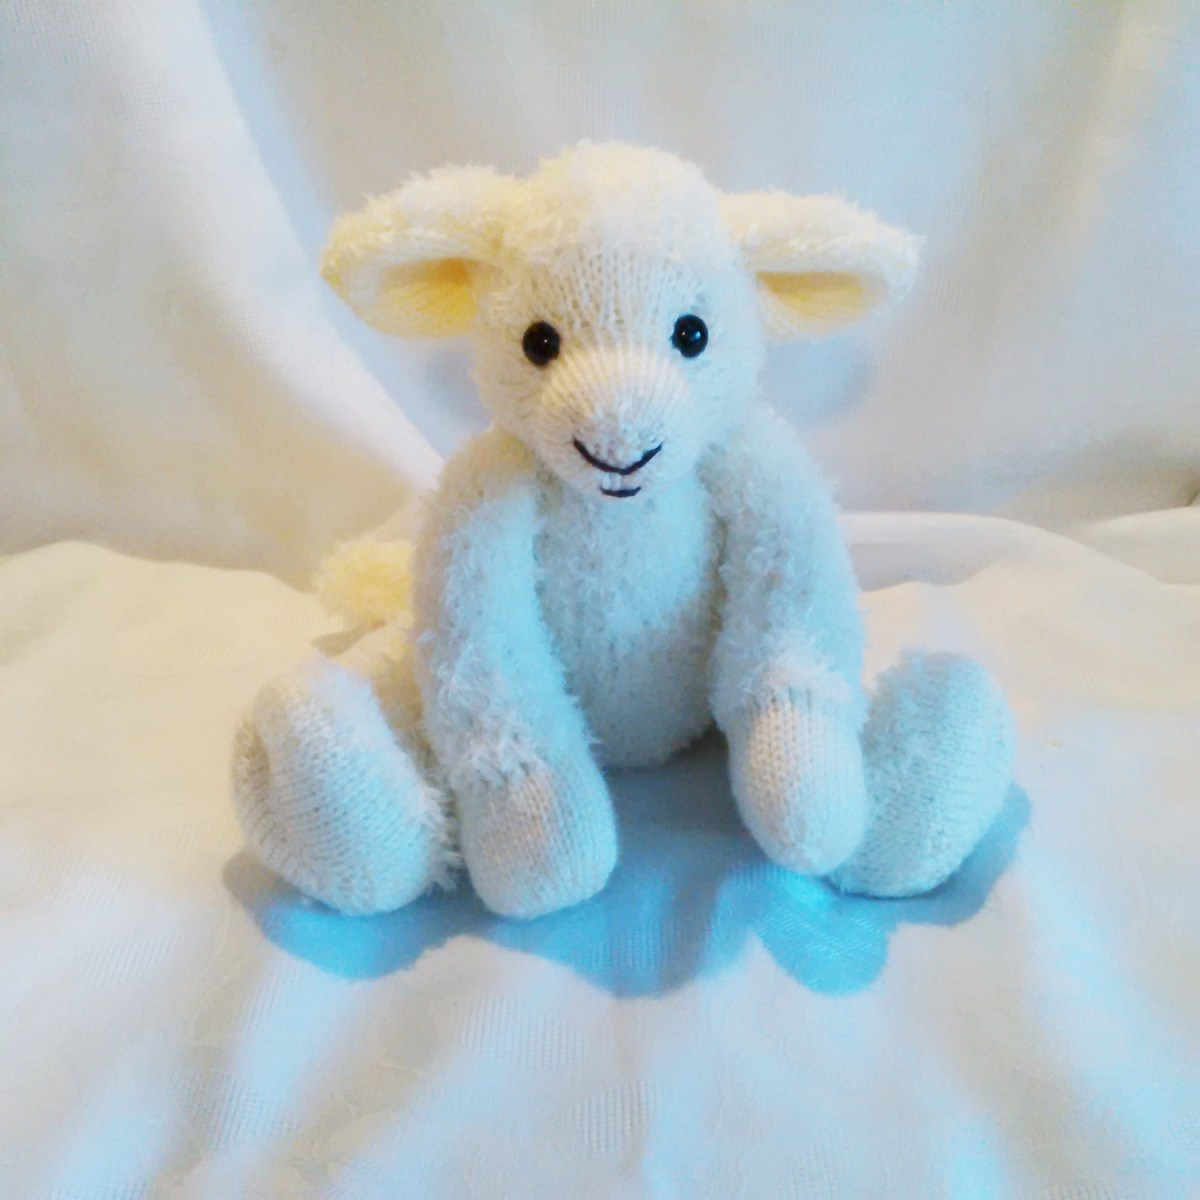 The Sweetest Crochet Lamb Patterns for Free 15 Free Animal Knitting Patterns The Funky Stitch